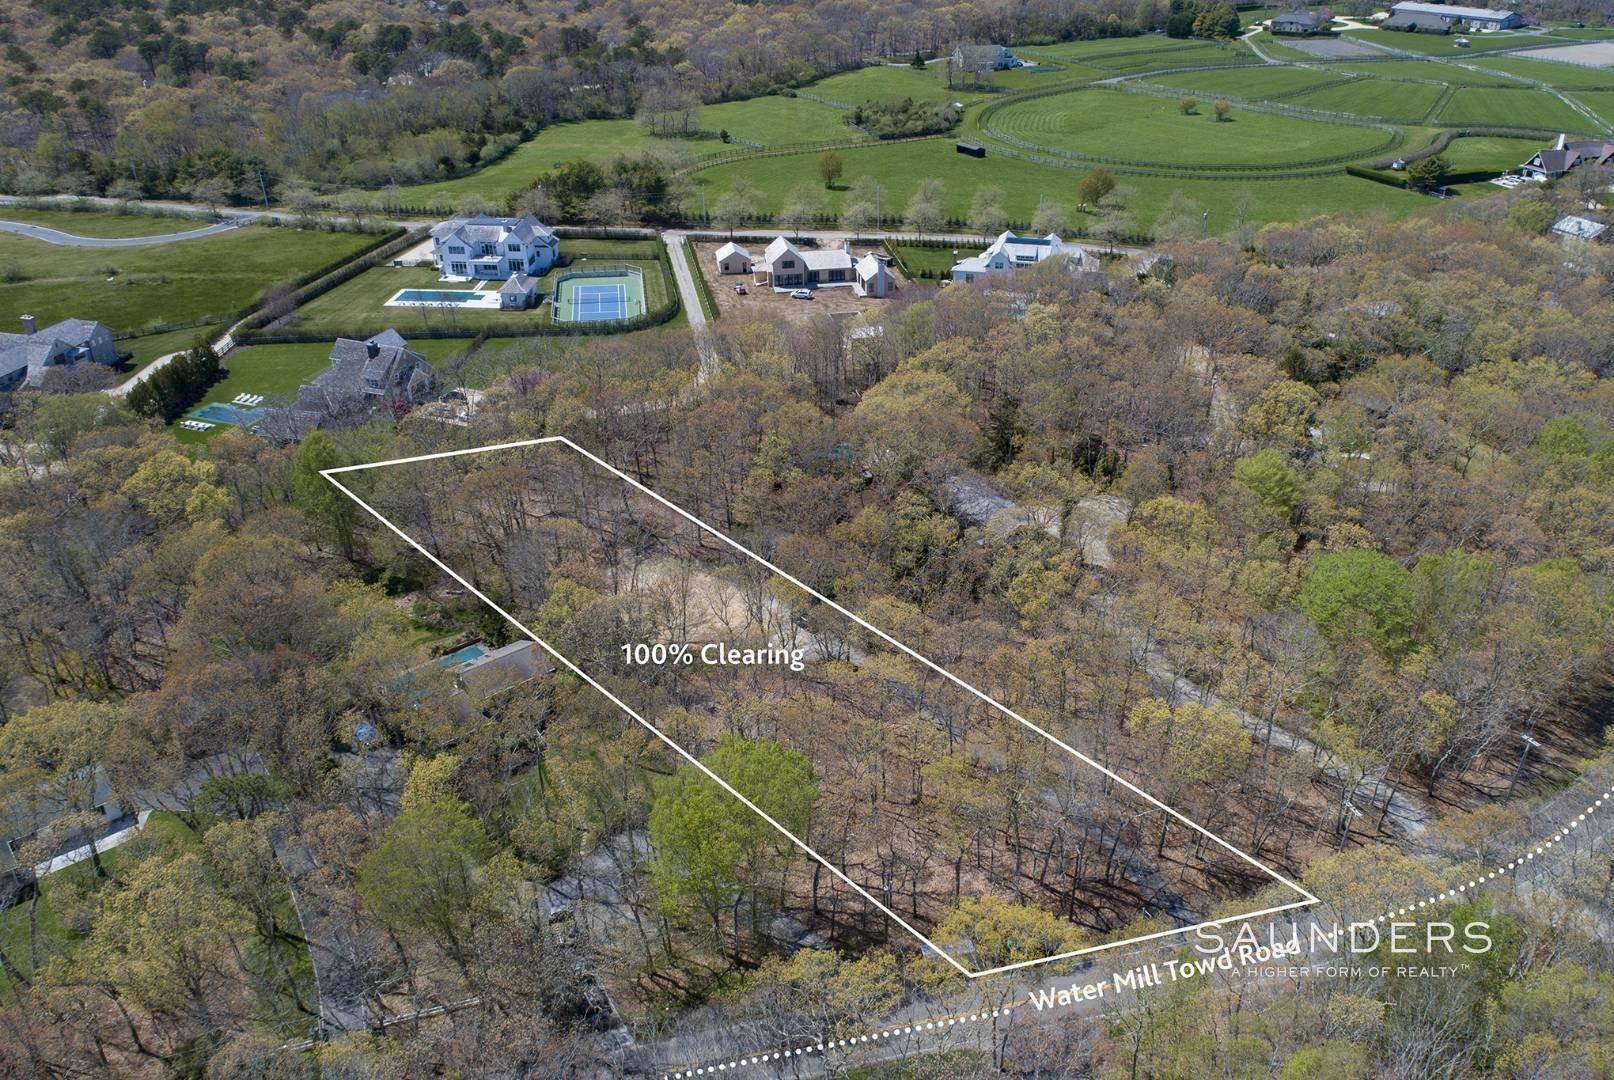 Land for Sale at Shy Acre In Water Mill 149 Water Mill Towd Road, Water Mill, Southampton Town, NY 11976